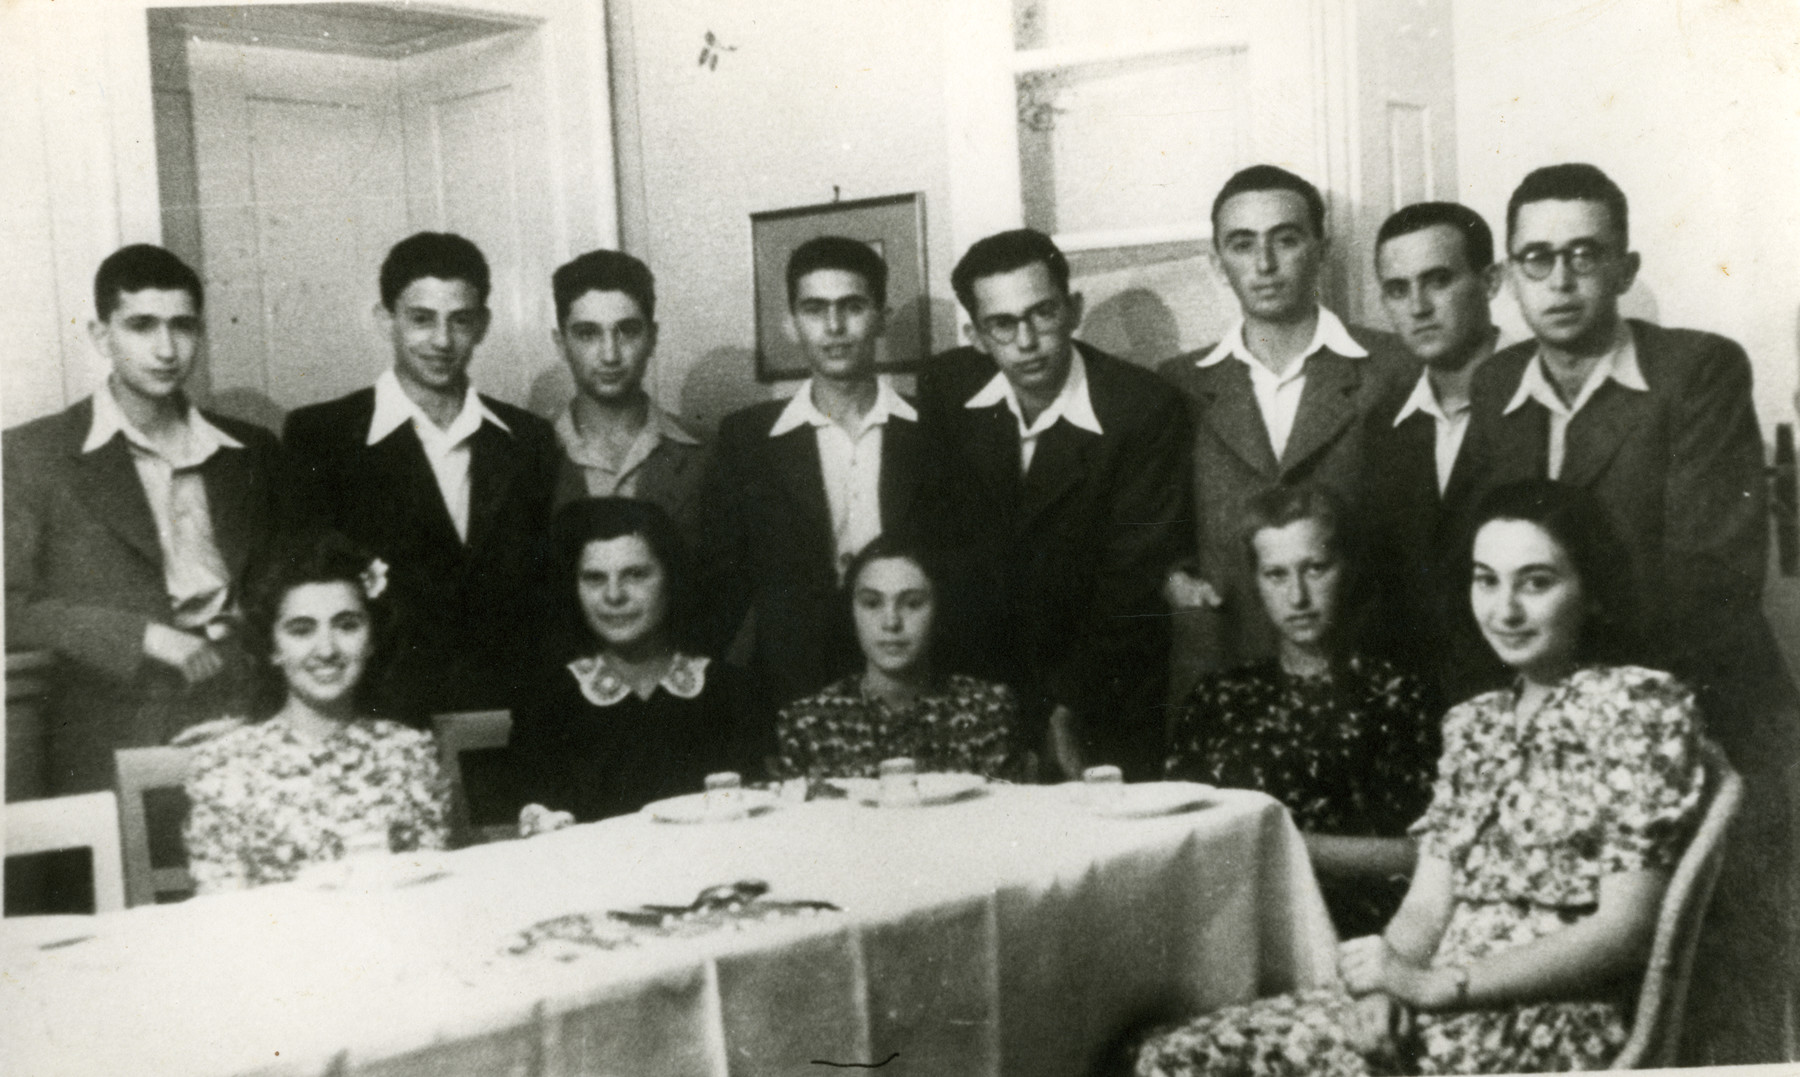 Jewish students celebrate their graduation though they officially had been expelled from school.  Yehudit Steiglitz is the third girl from the right.